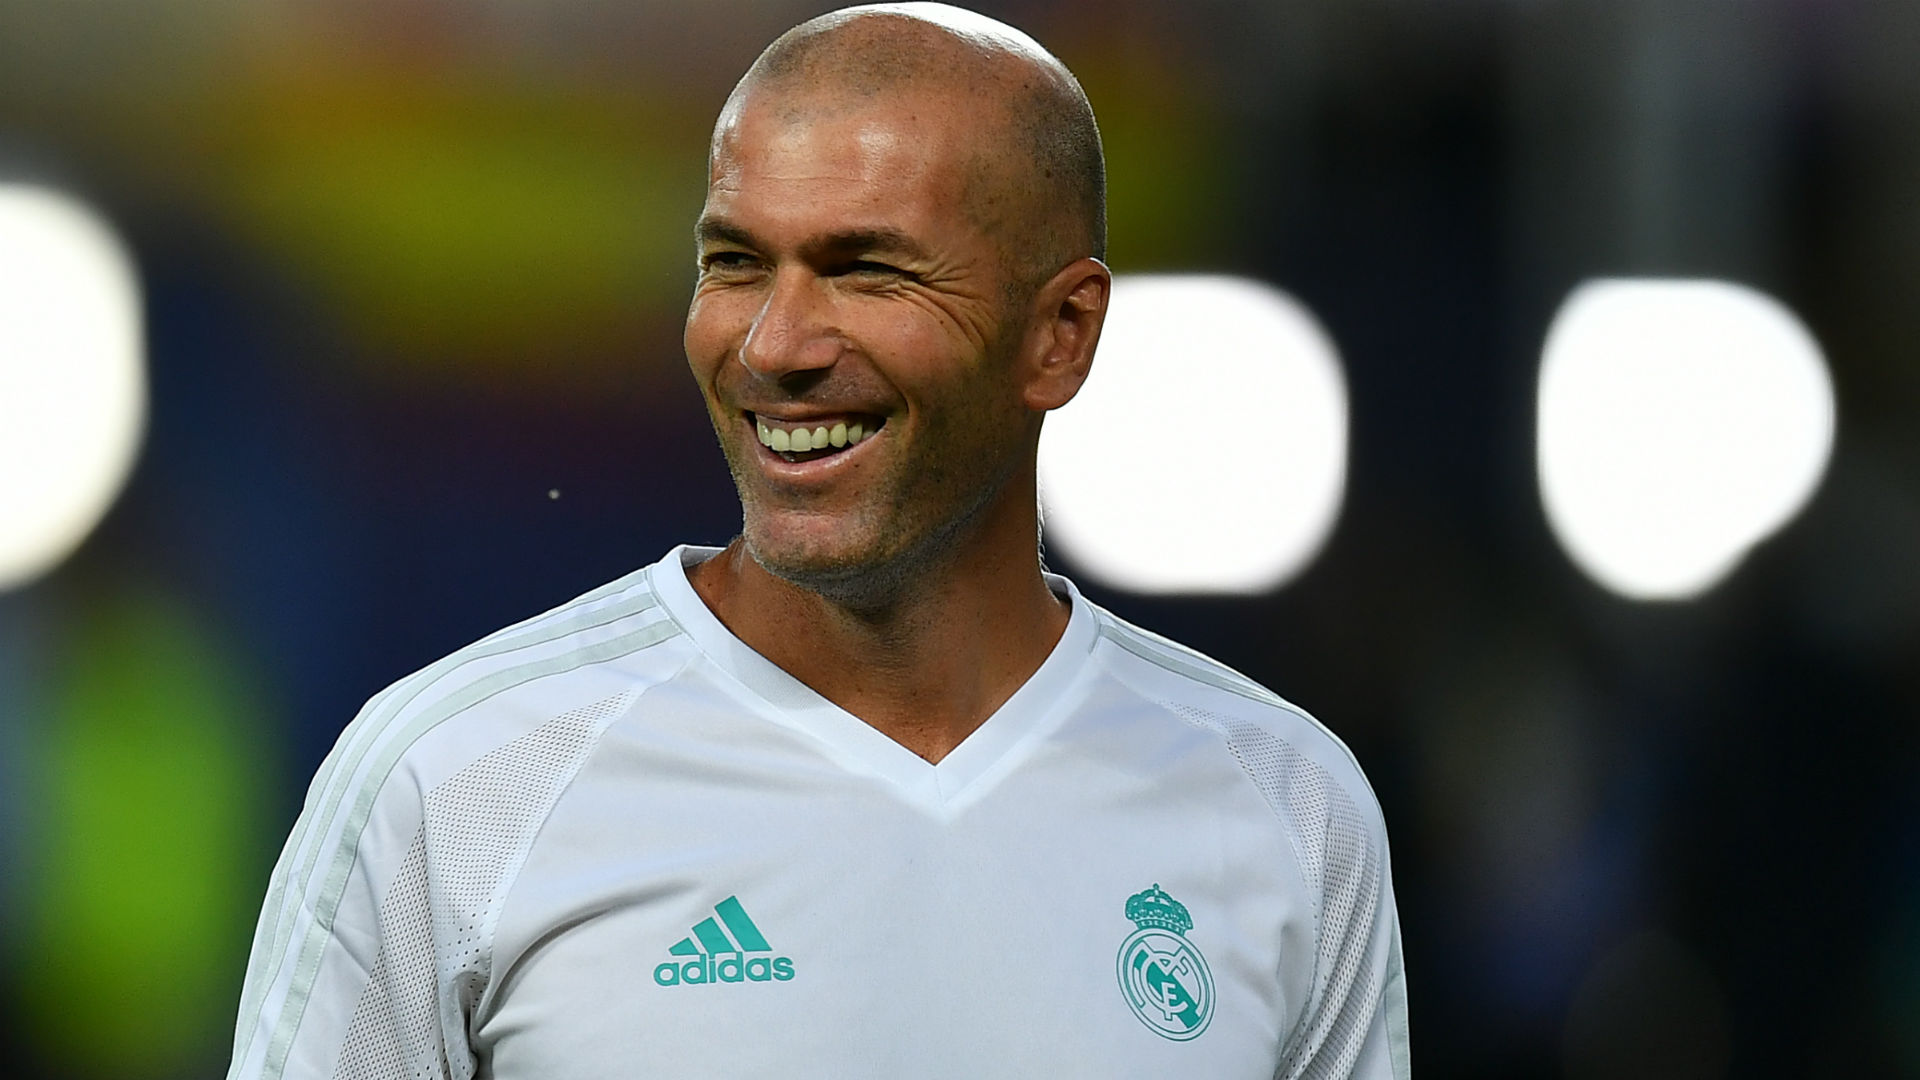 Zidane happy to sign new Real Madrid contract